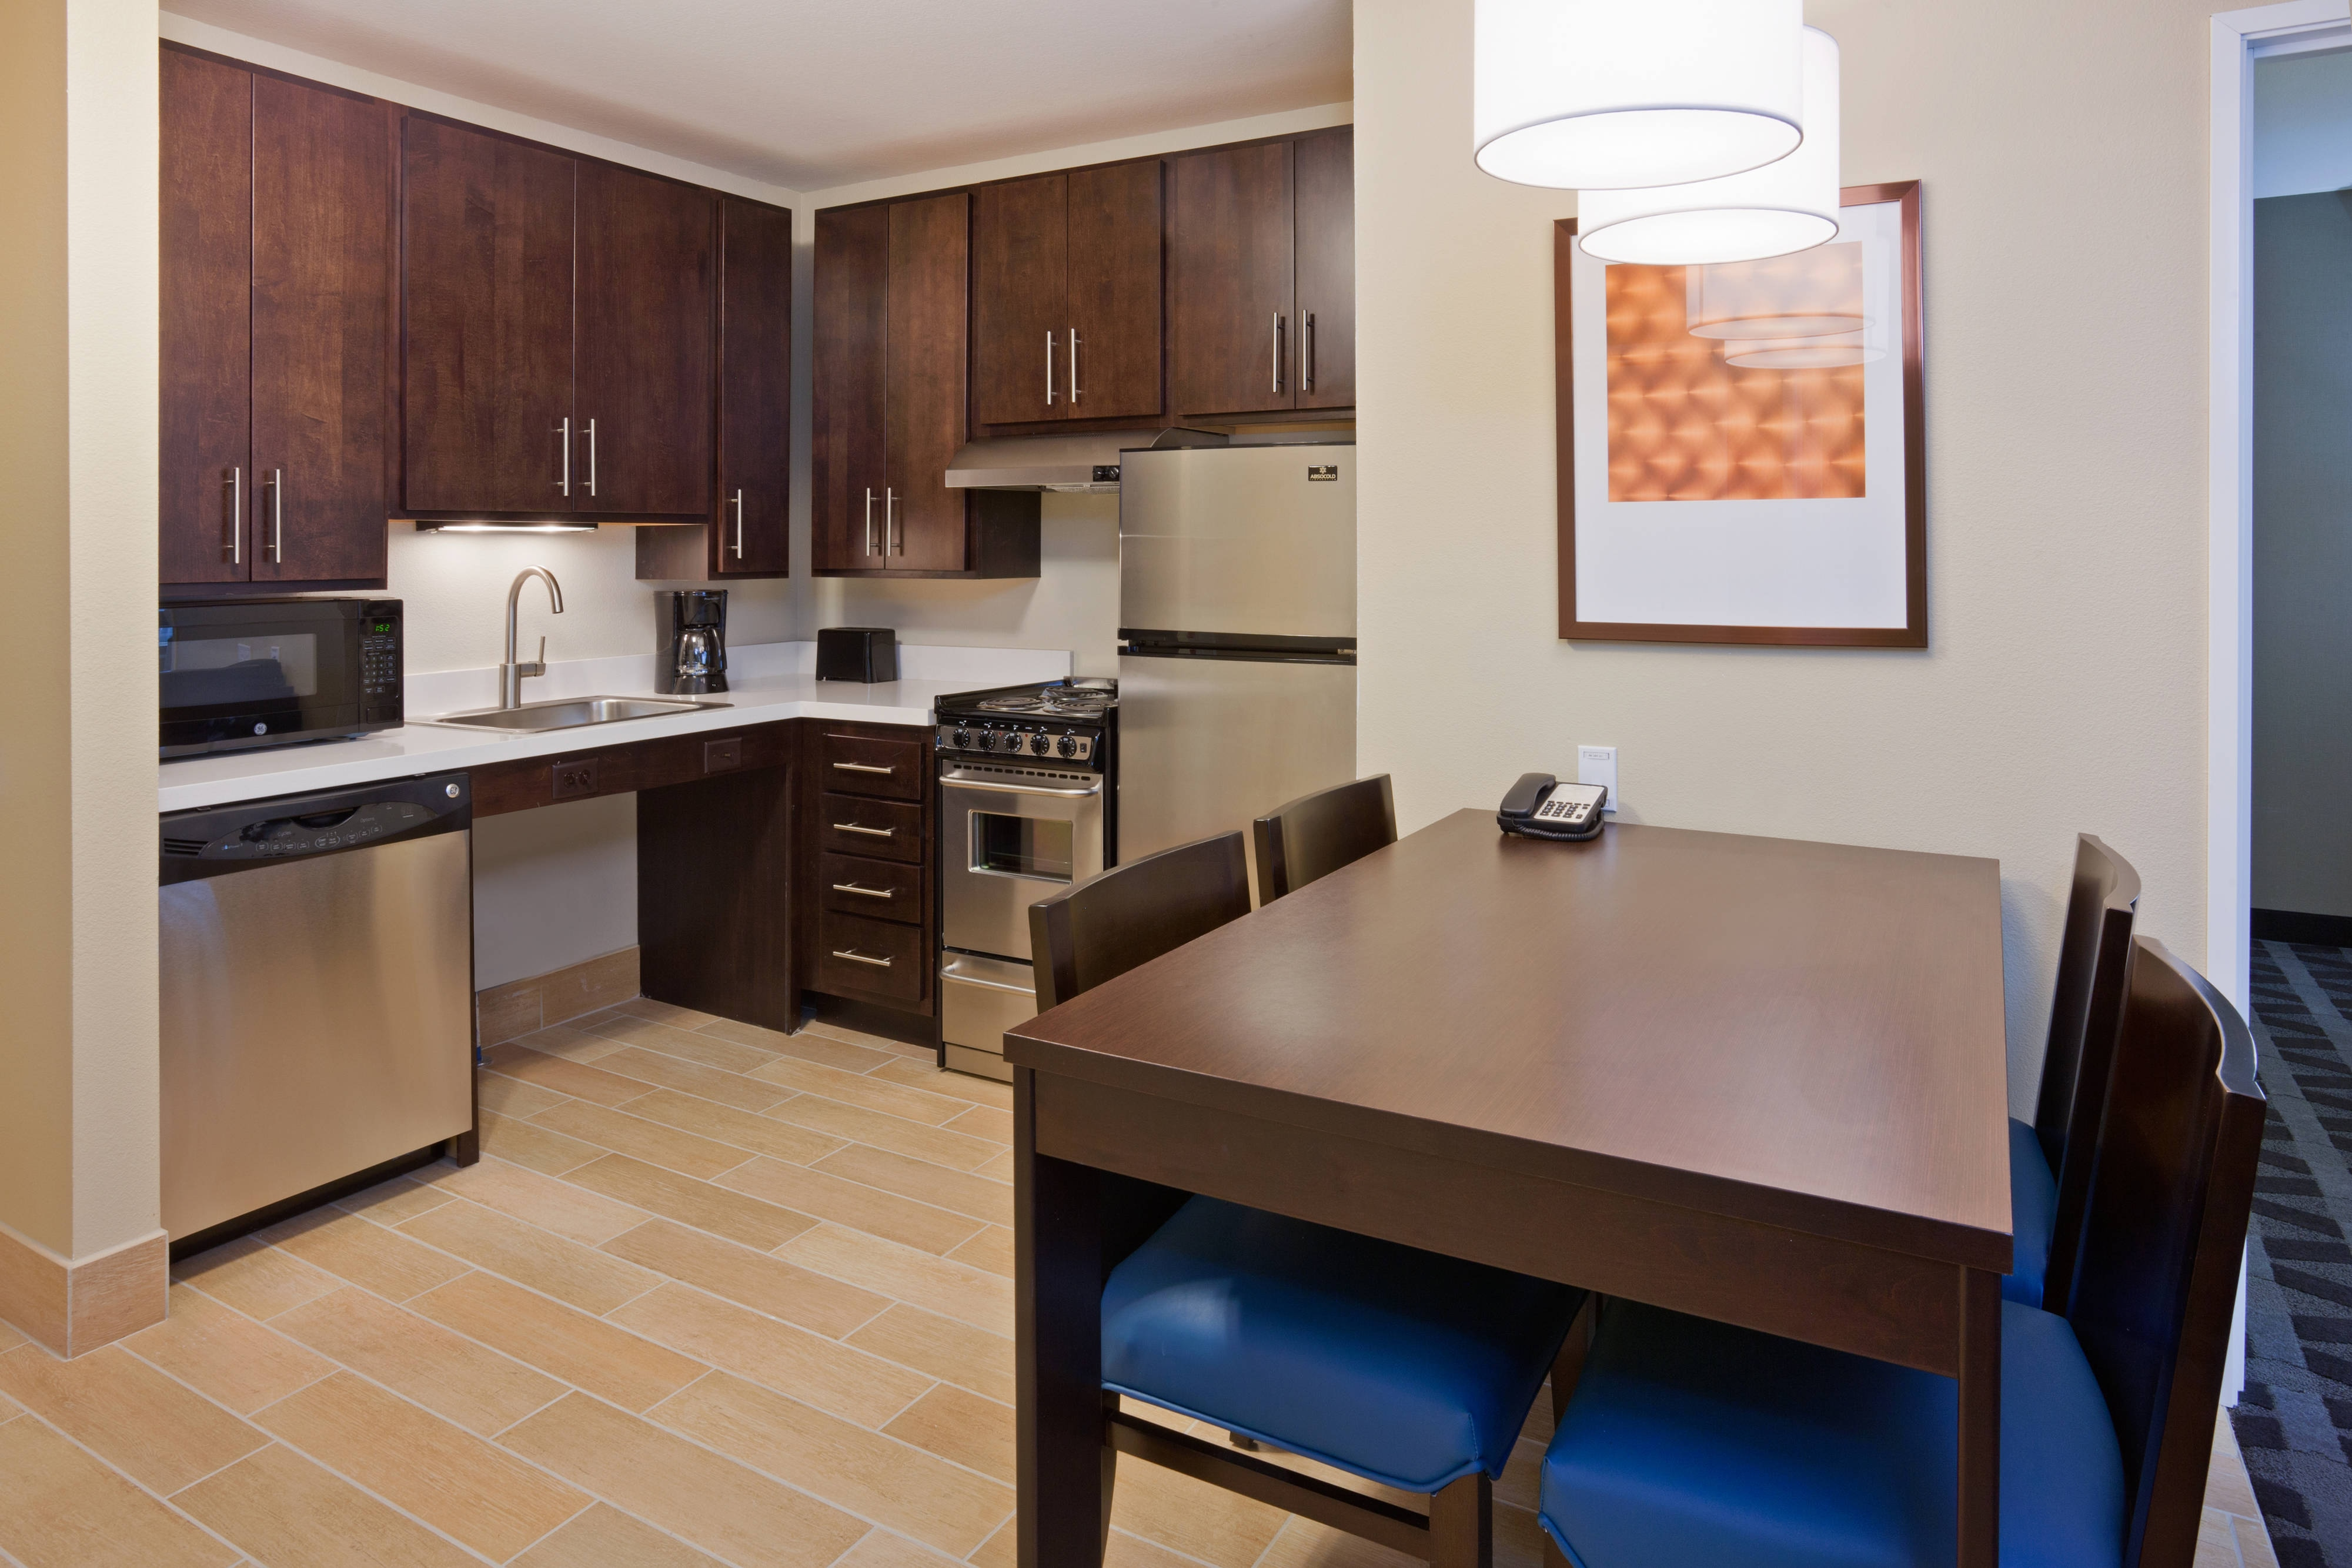 Two bedroom suite kitchen and table area